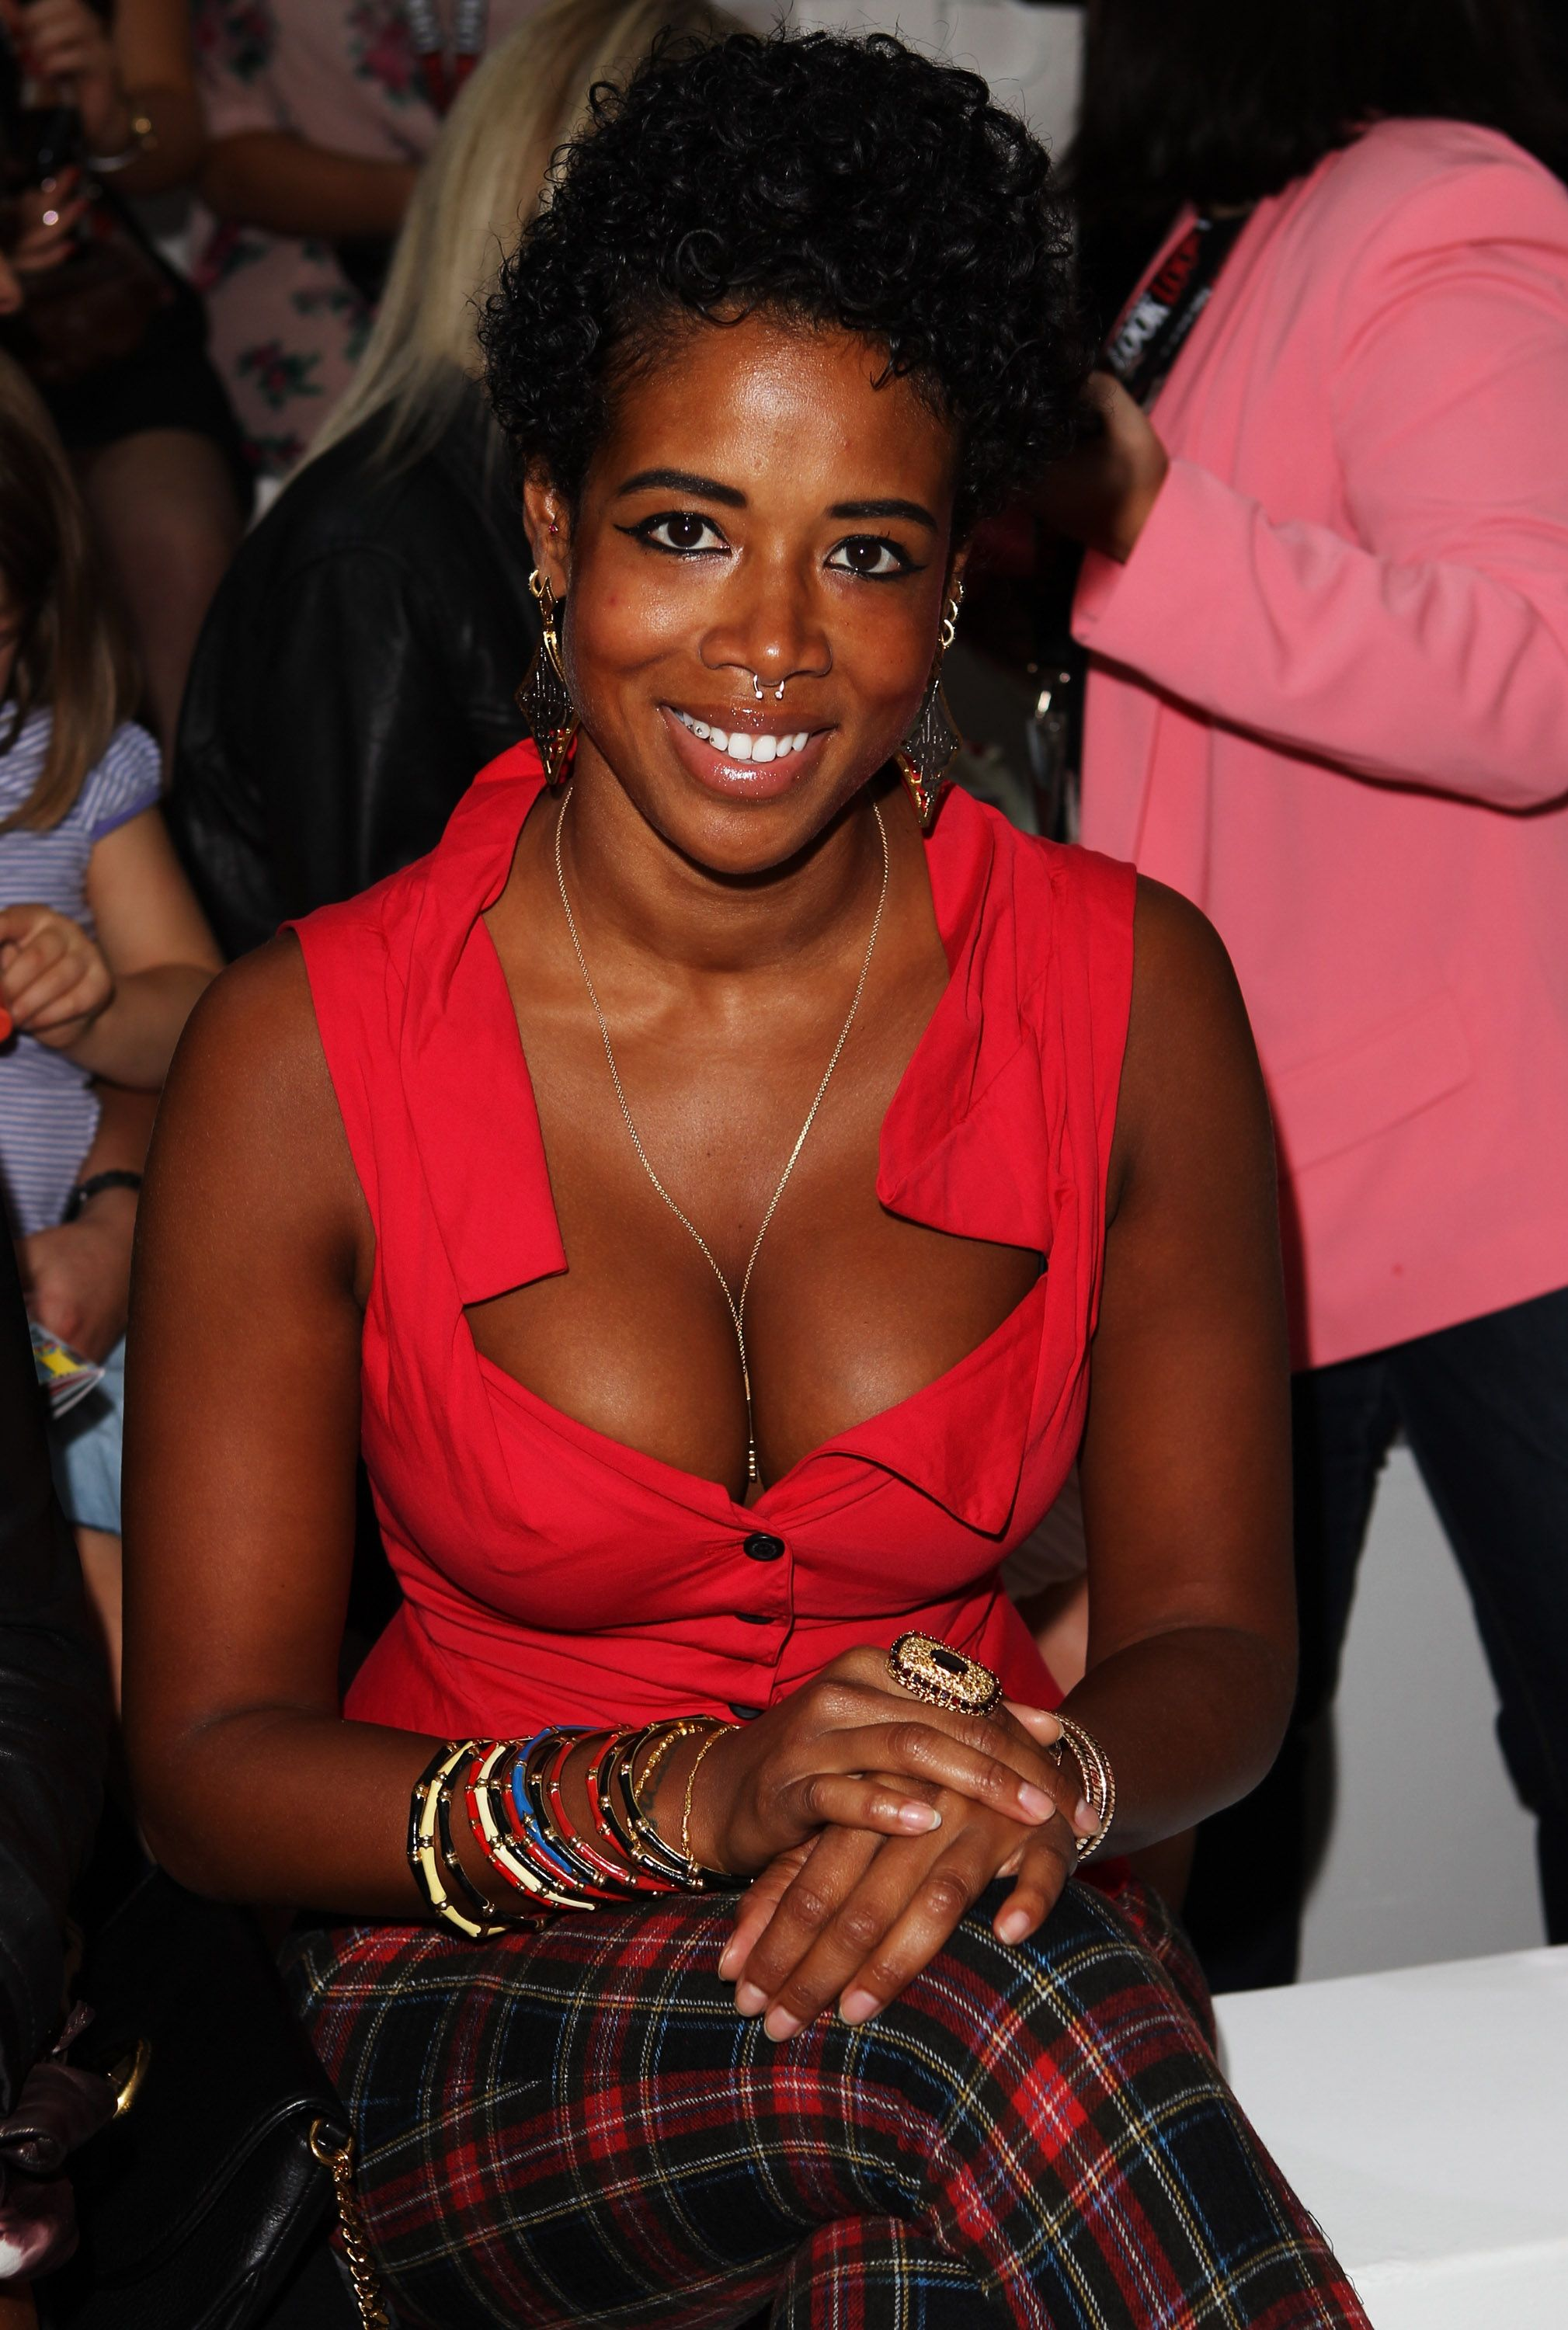 Kelis attends the LOOK fashion show during London Fashion Week in September 2011 | Photo: Getty Images